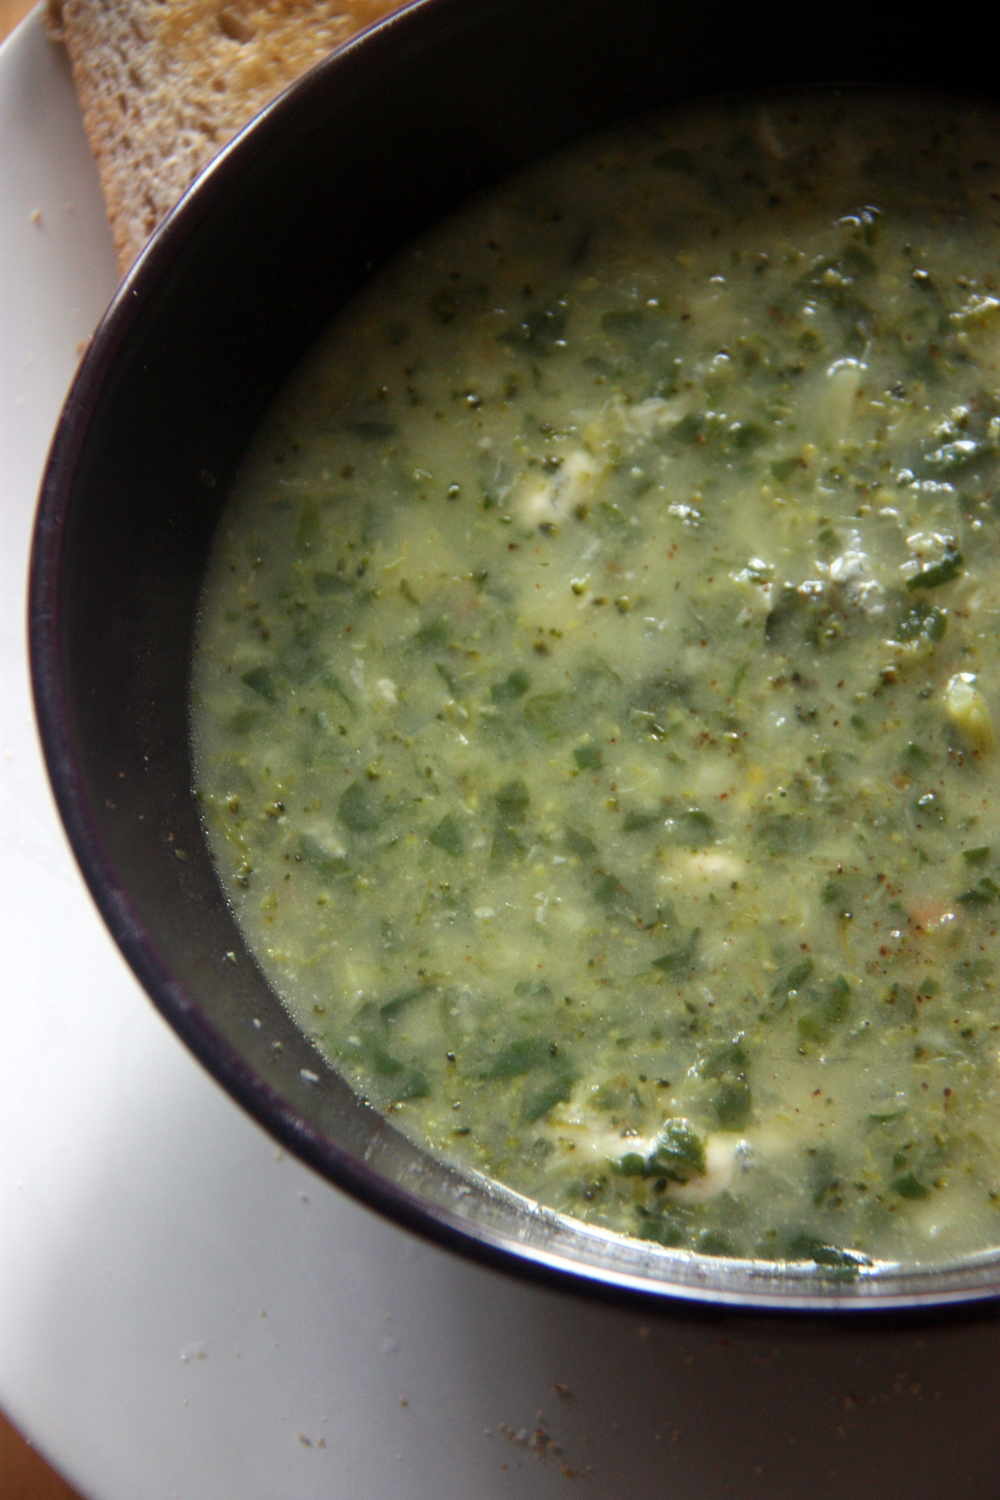 Stay tuned for this amazing soup recipe- it was amazing. Did I mention amazing?